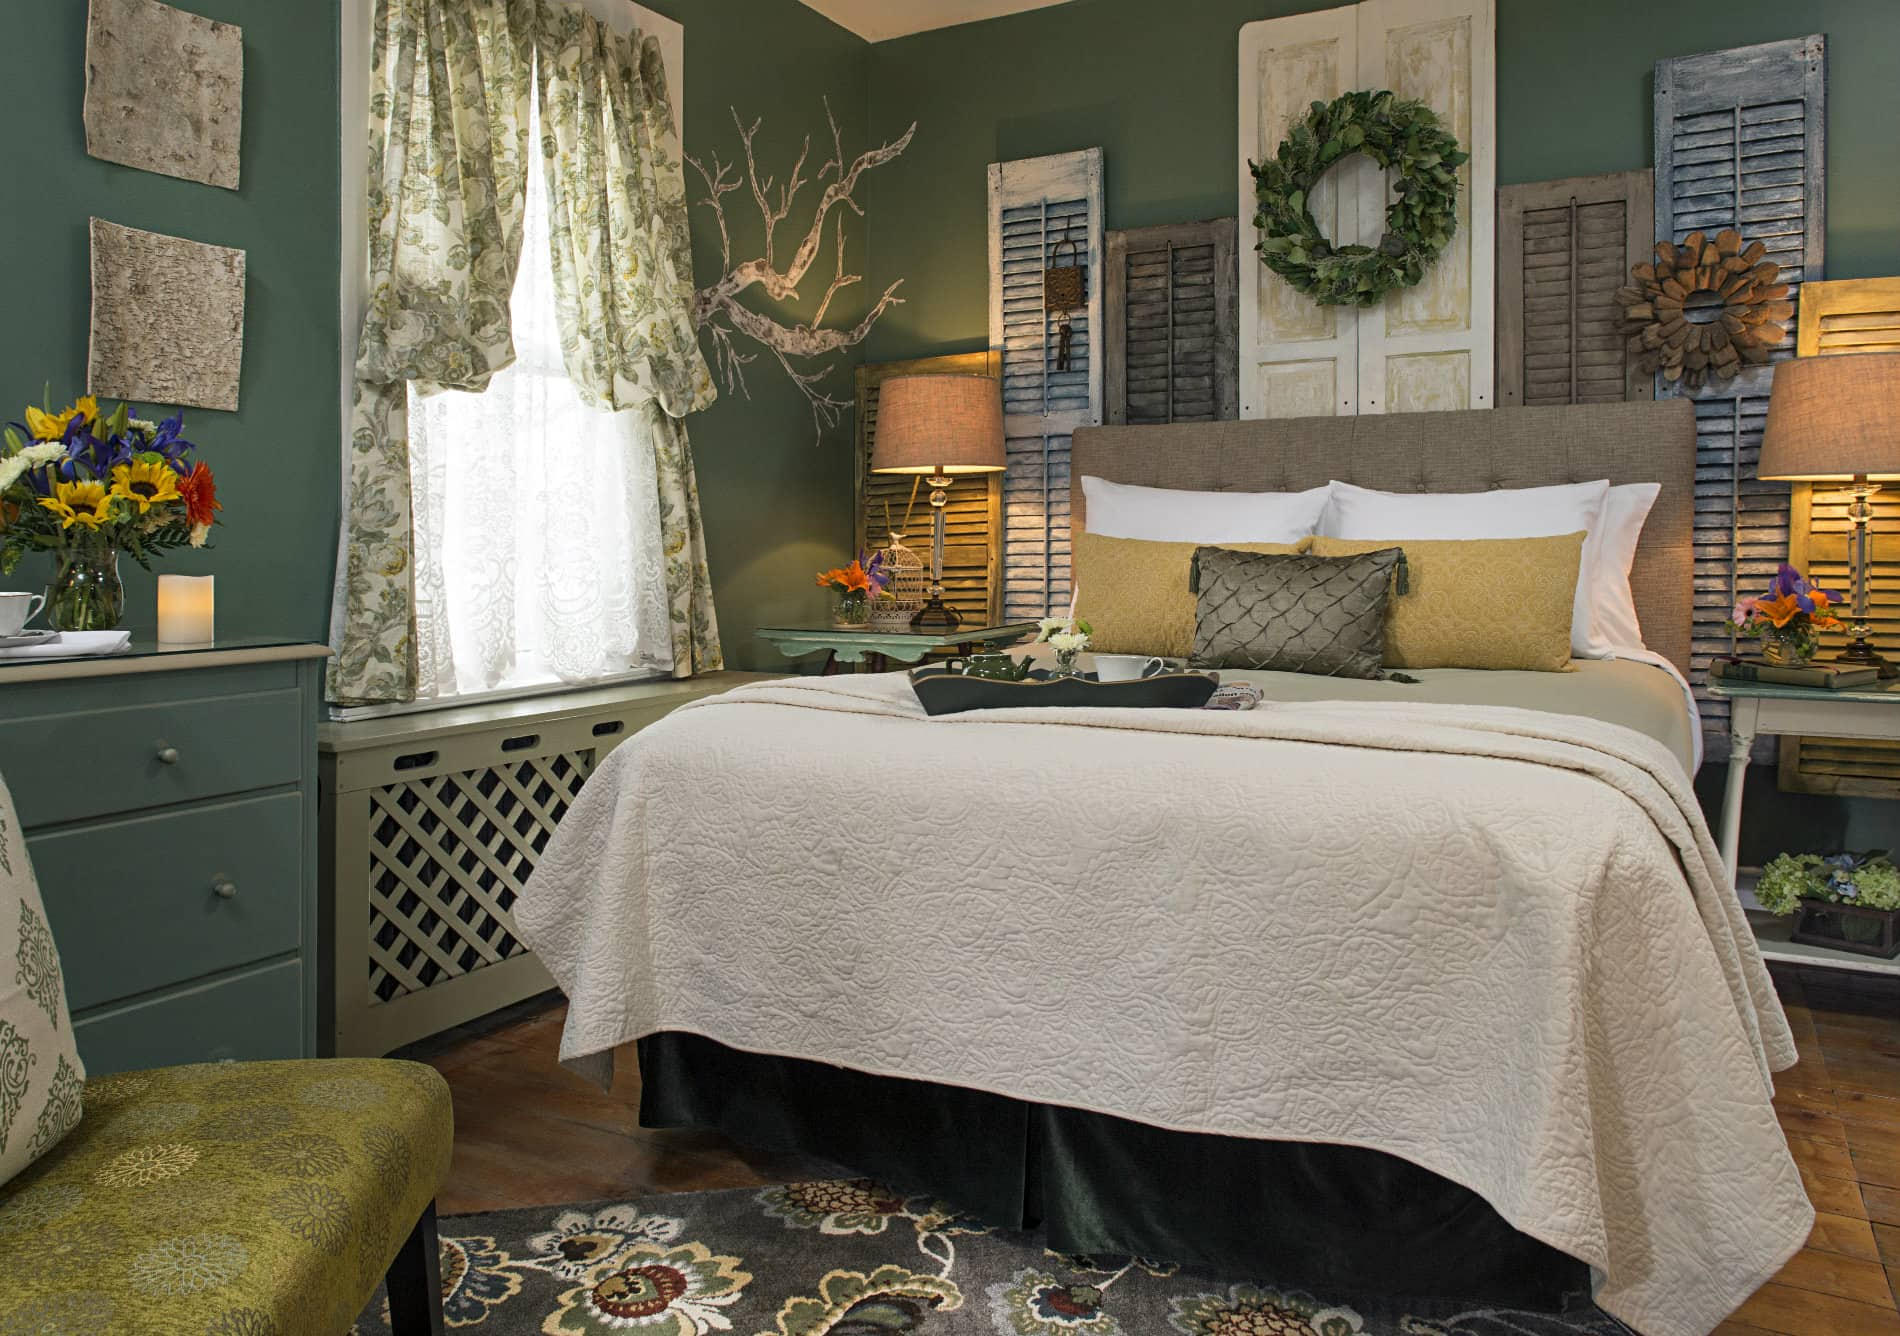 green room with bed covered in white and tan linens with golden yellow throw pillows and a decorative display of grey, brown and white window shutters behind the bed